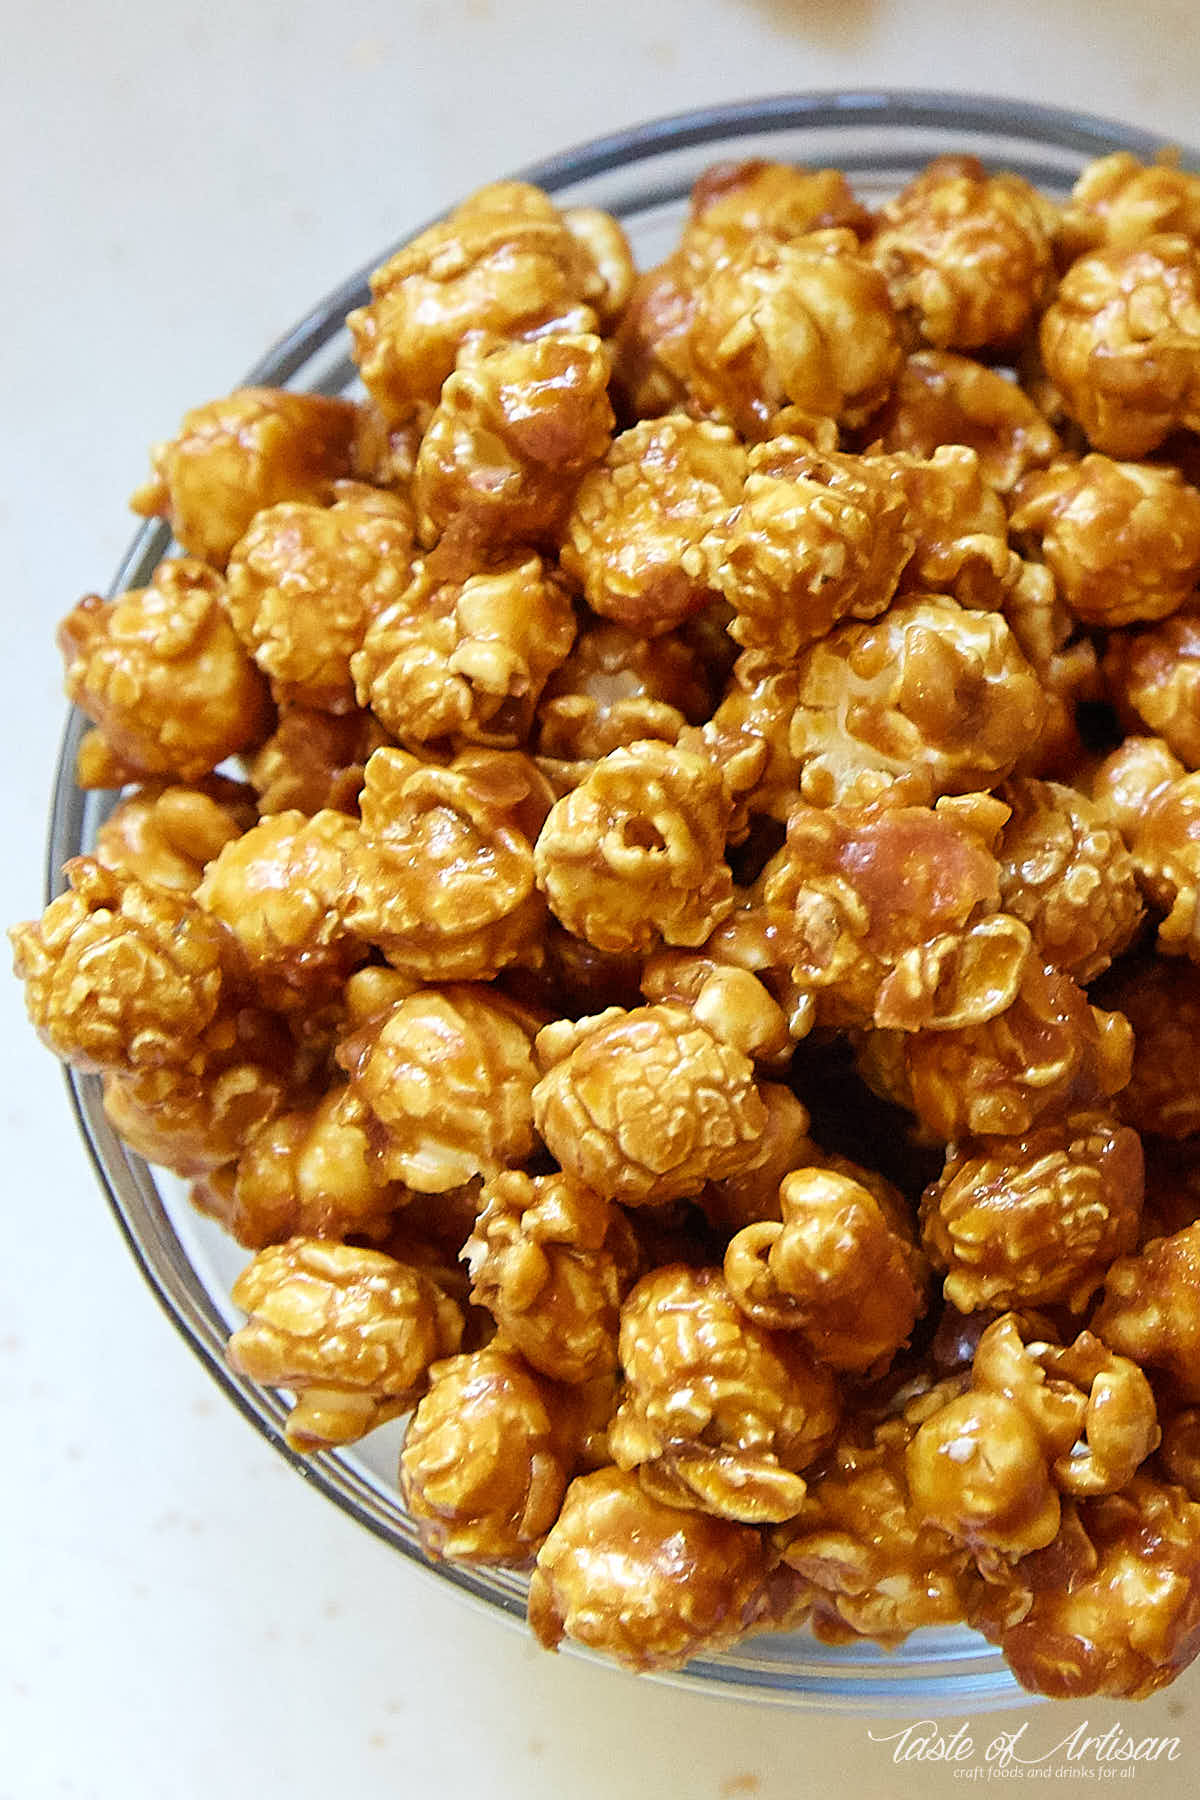 A bowl of homemade caramel popcorn, a top down view.